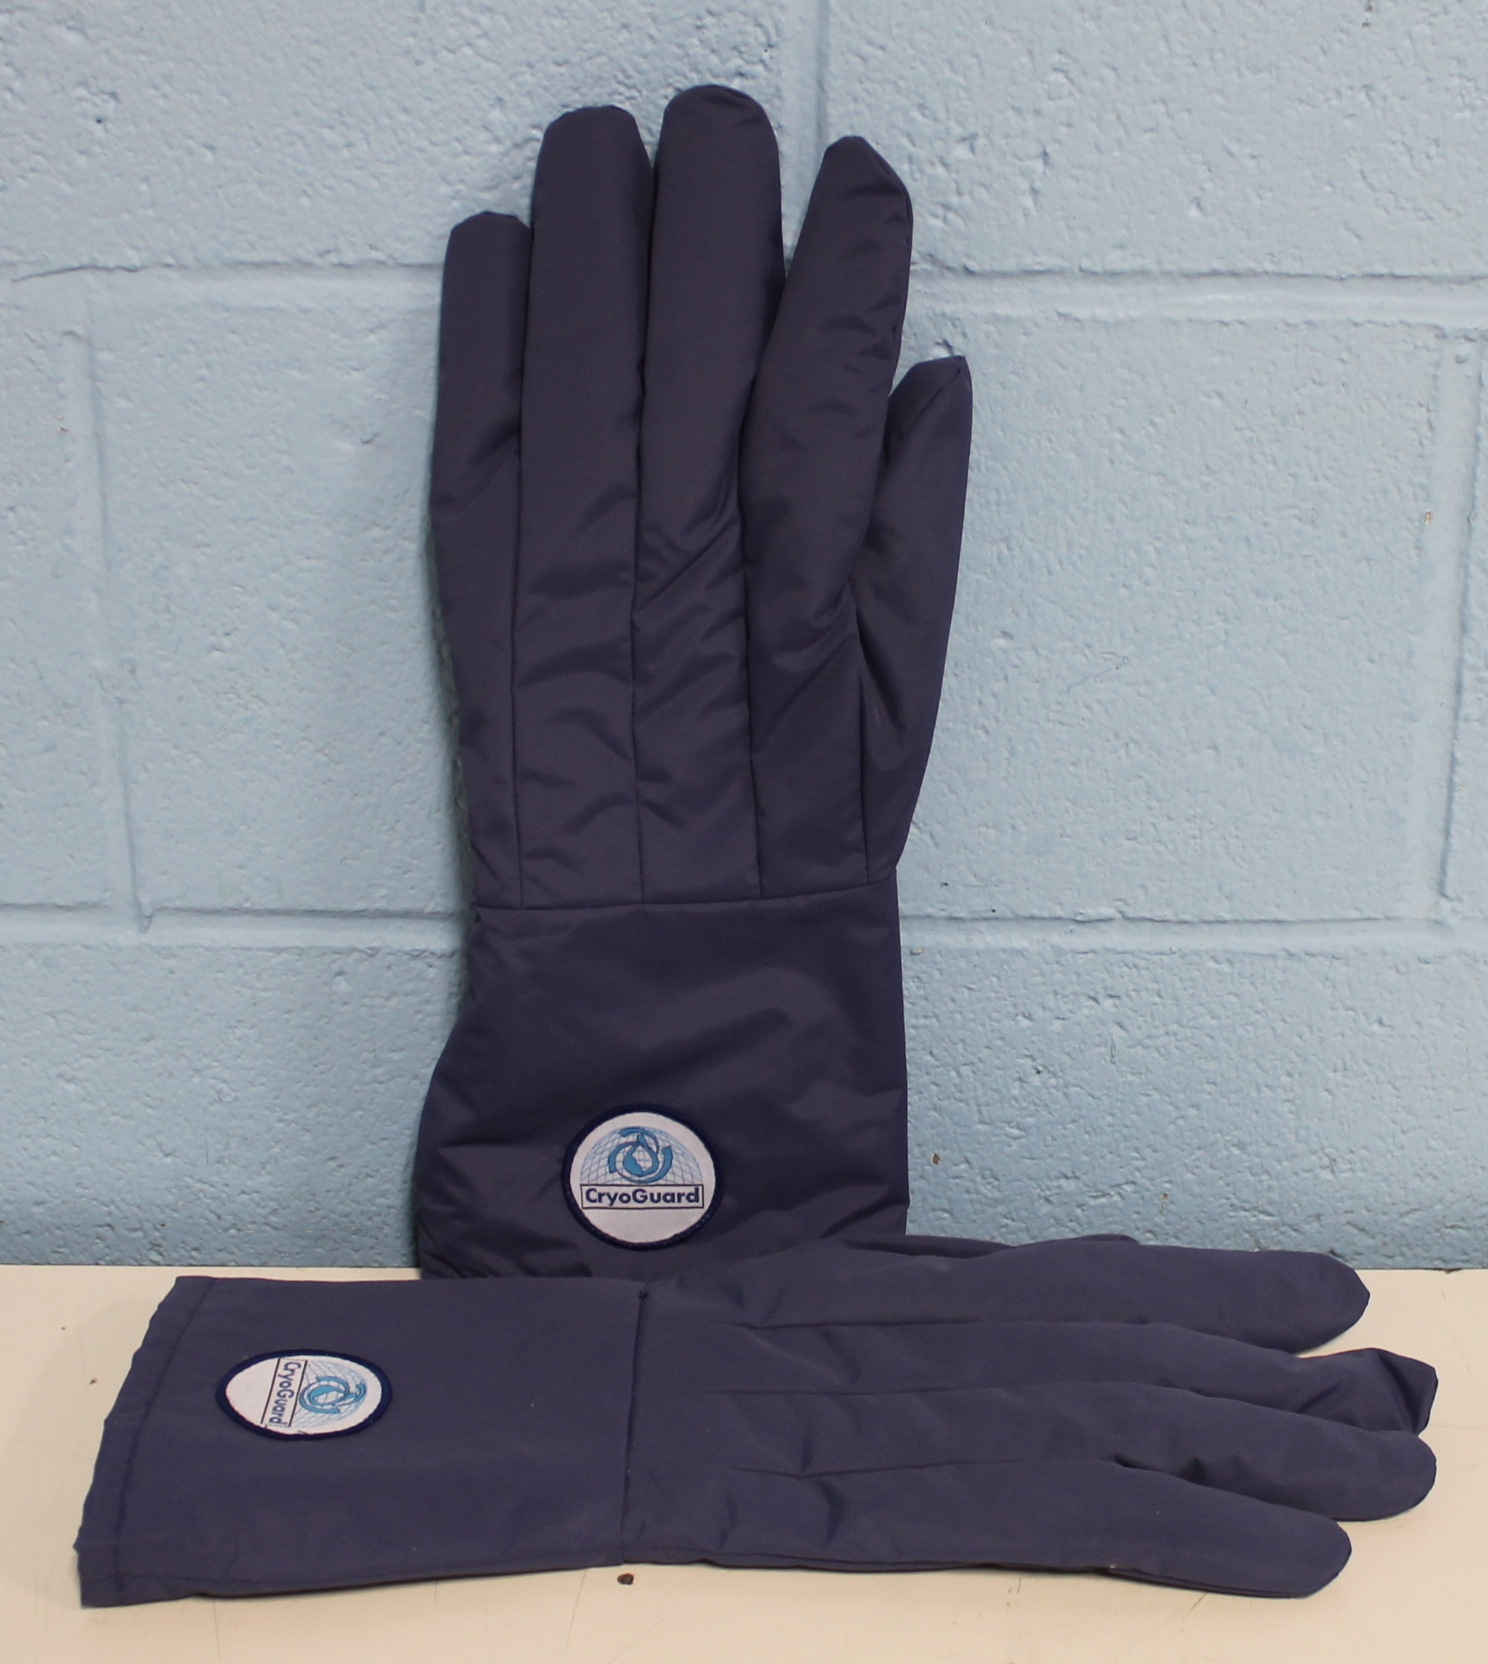 Cyroguard Standard Cryogenic Gloves Mid Arm Length Image